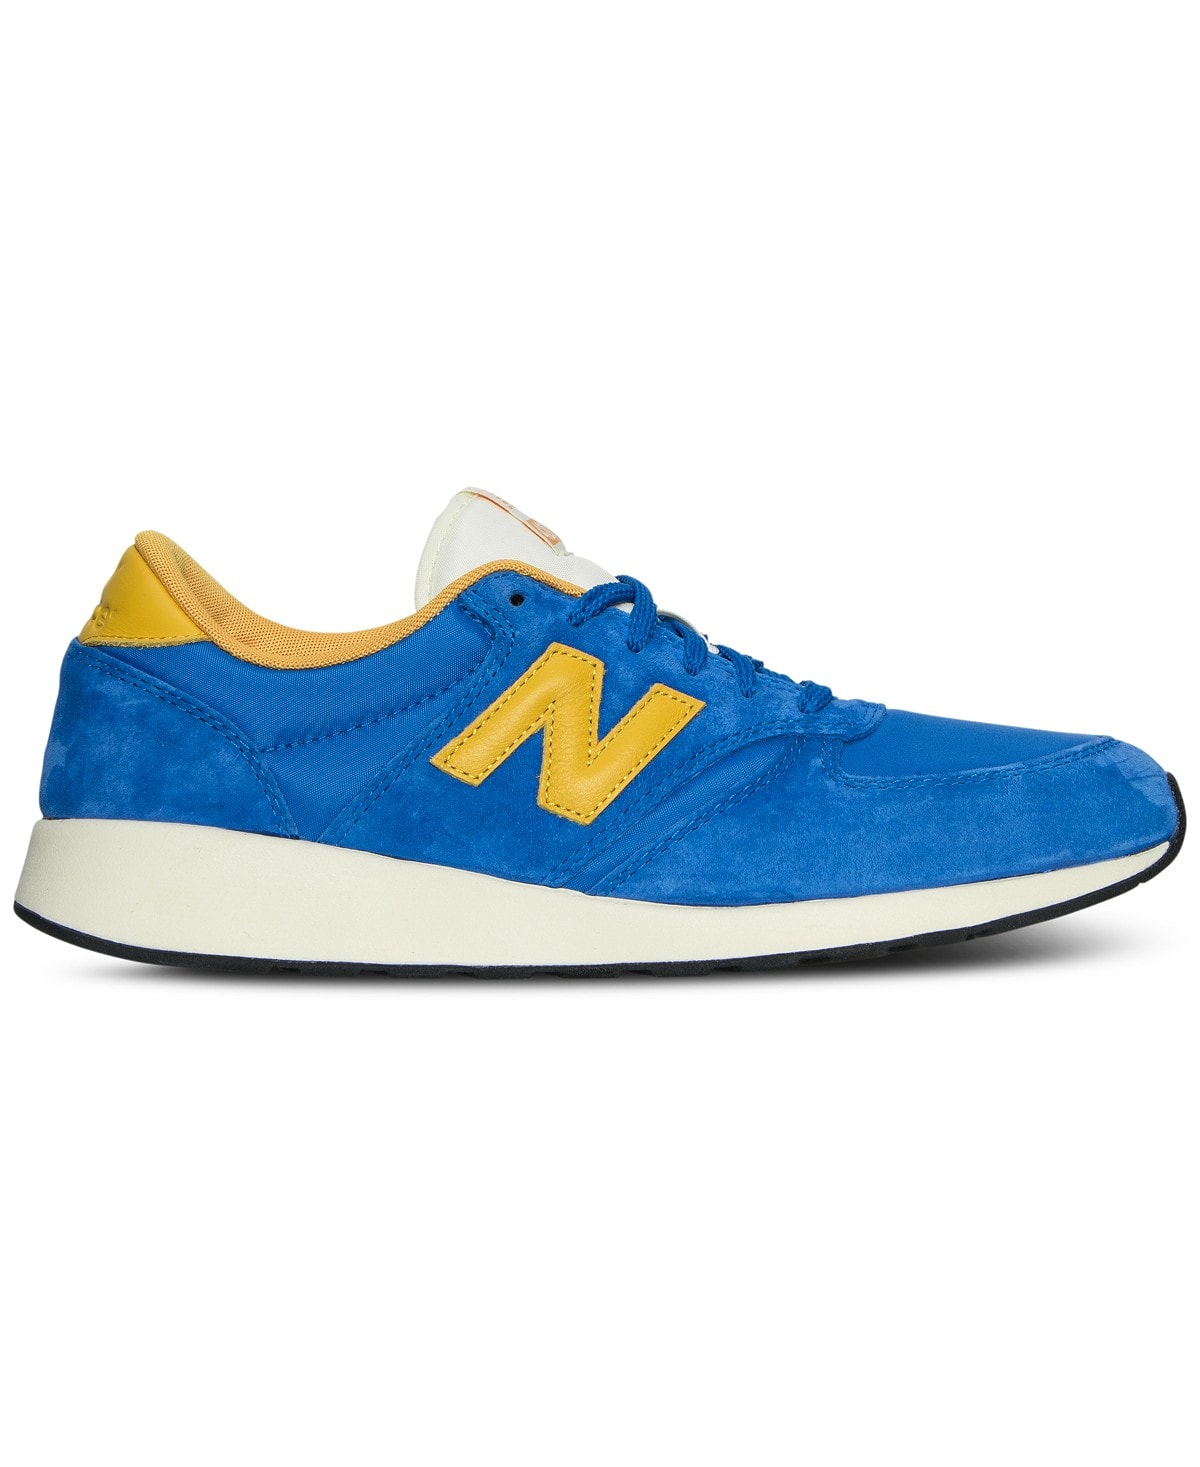 New Balance Men's 420 Retro Casual Sneakers from Finish Line REG $85 now $30